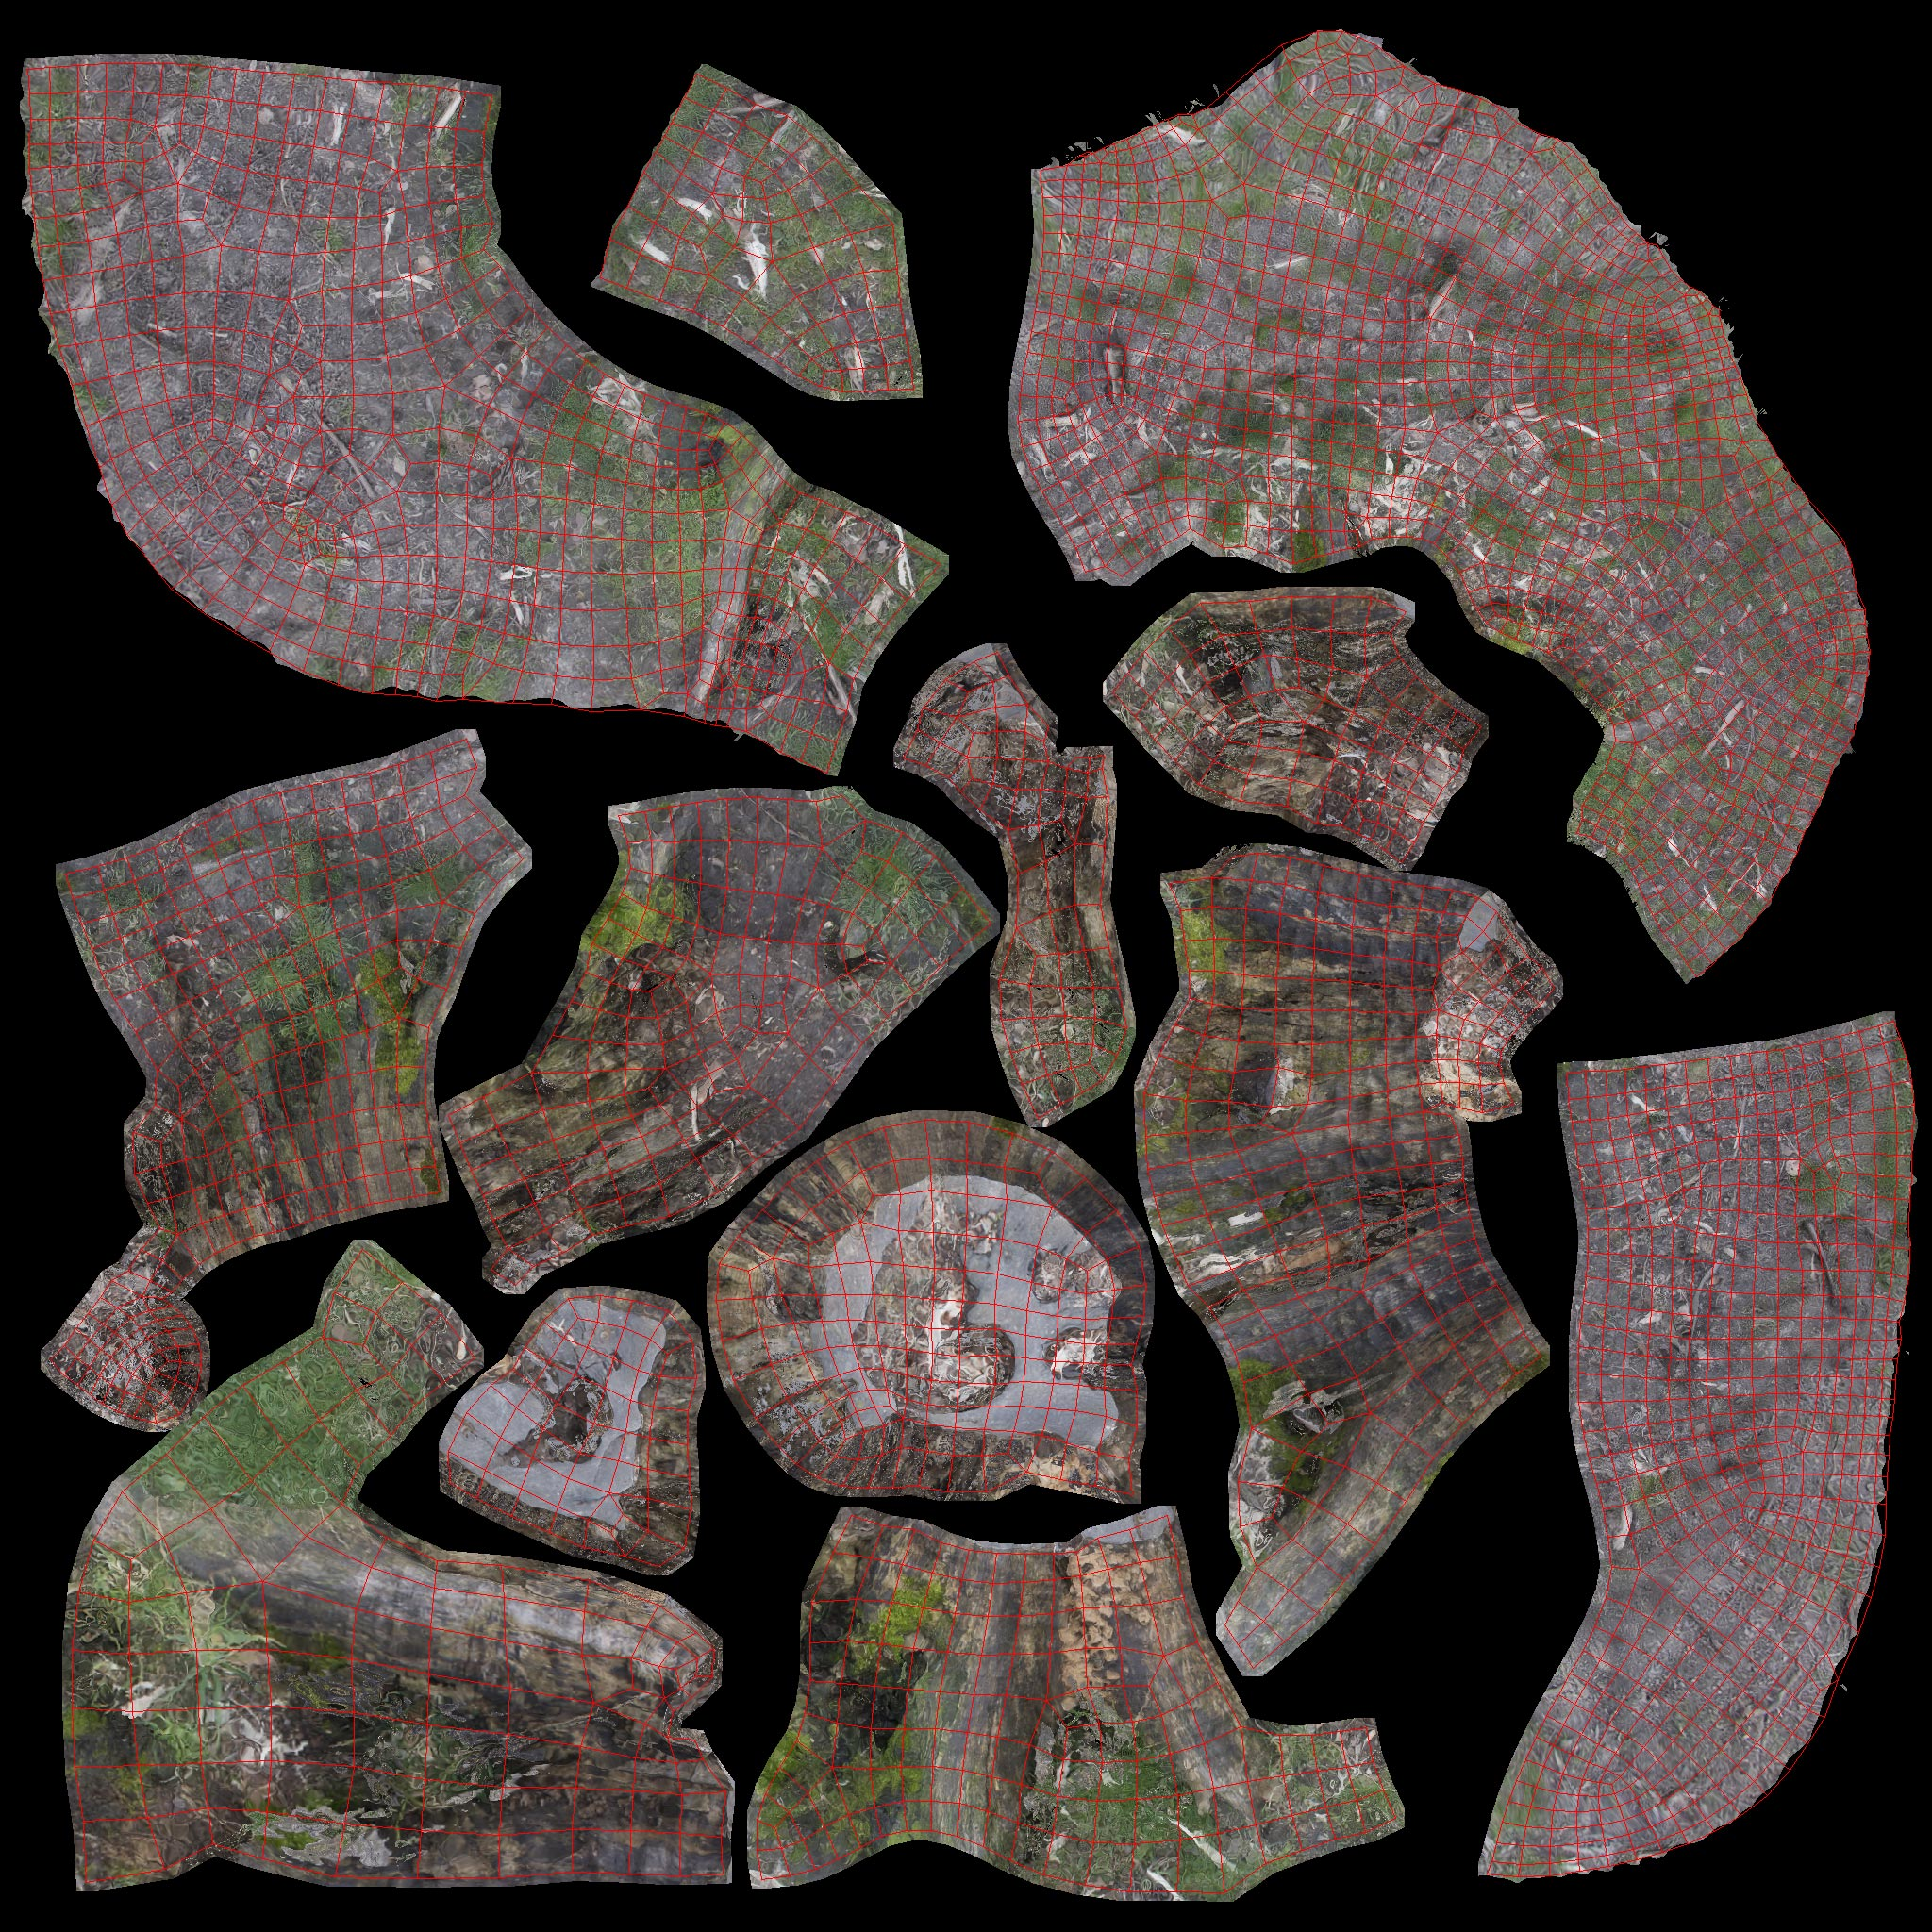 TALOS 3D Scan Store Tree Stump textures